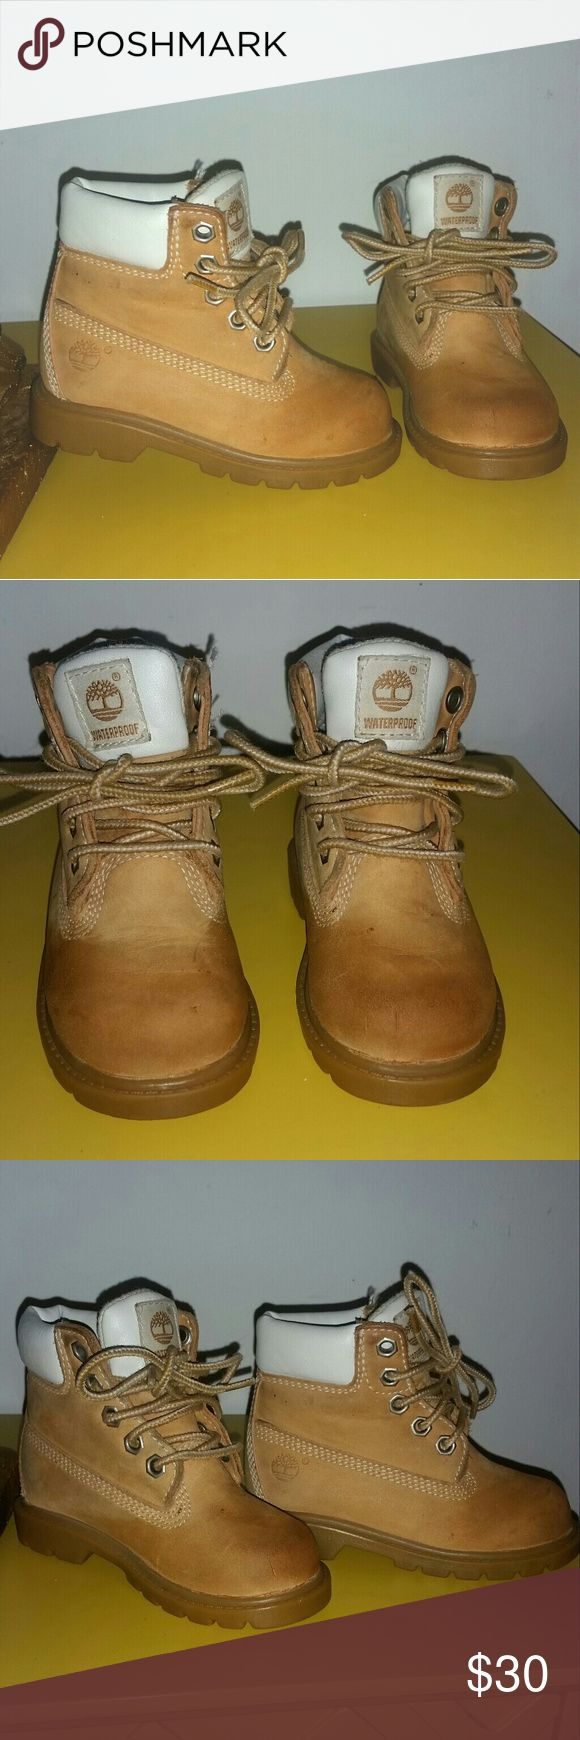 TODDLER BOYS TIMBERLAND BOOTS - SIZE 7 TIMBERLAND BOOTS FOR TODDLER BOYS - SIZE 7 ( TODDLER) ...THESE BOOTS ARE PRE LOVED AND IN GREAT CONDITION AND DOES SHOW SIGNS OF WEAR ON THE EXTERIOR OF BOOTS...WHICH ARE MINOR SCUFFS ON THE FRONT OF BOOTS...  MATERIALS CONSIST OF GENUINE LEATHER UPPER, MANMADE COLLAR, LININGS AND OUTSOLE Timberland Shoes Boots